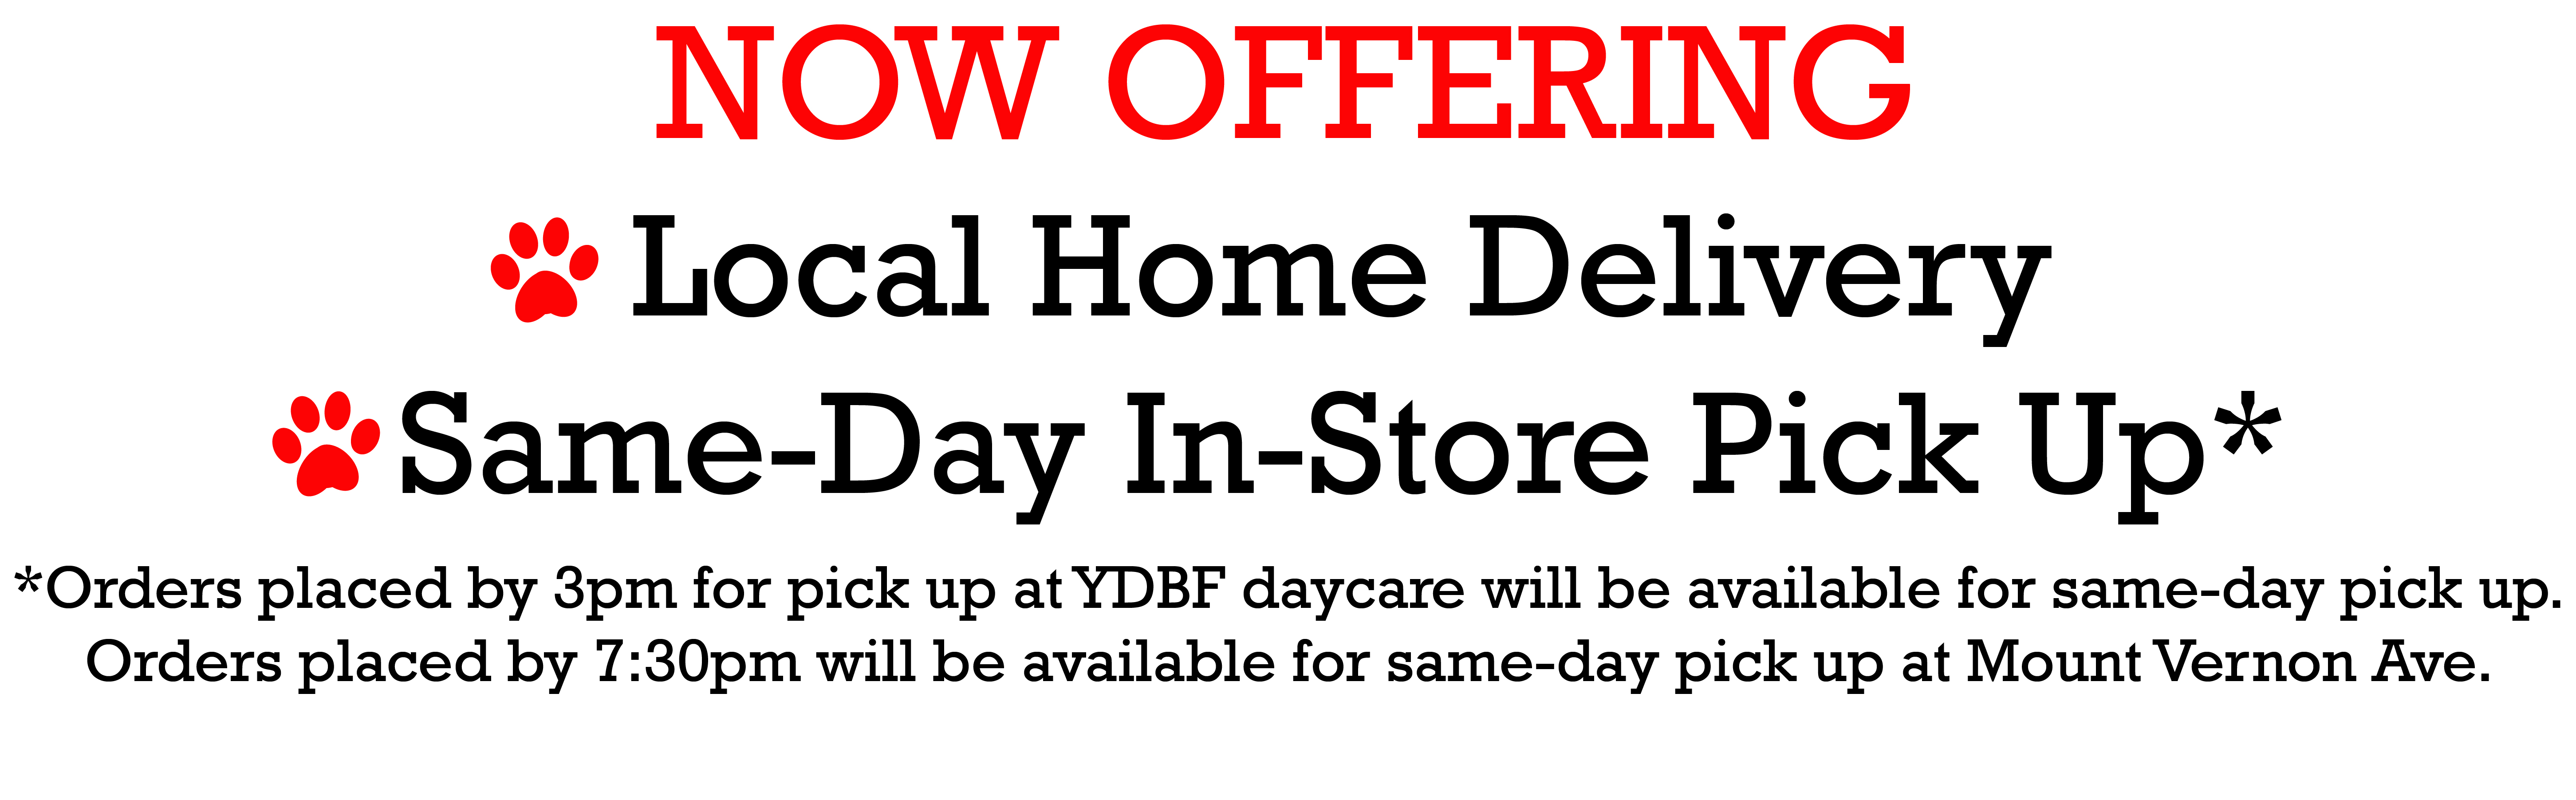 Now offering Home Delivery and In Store Pick Up